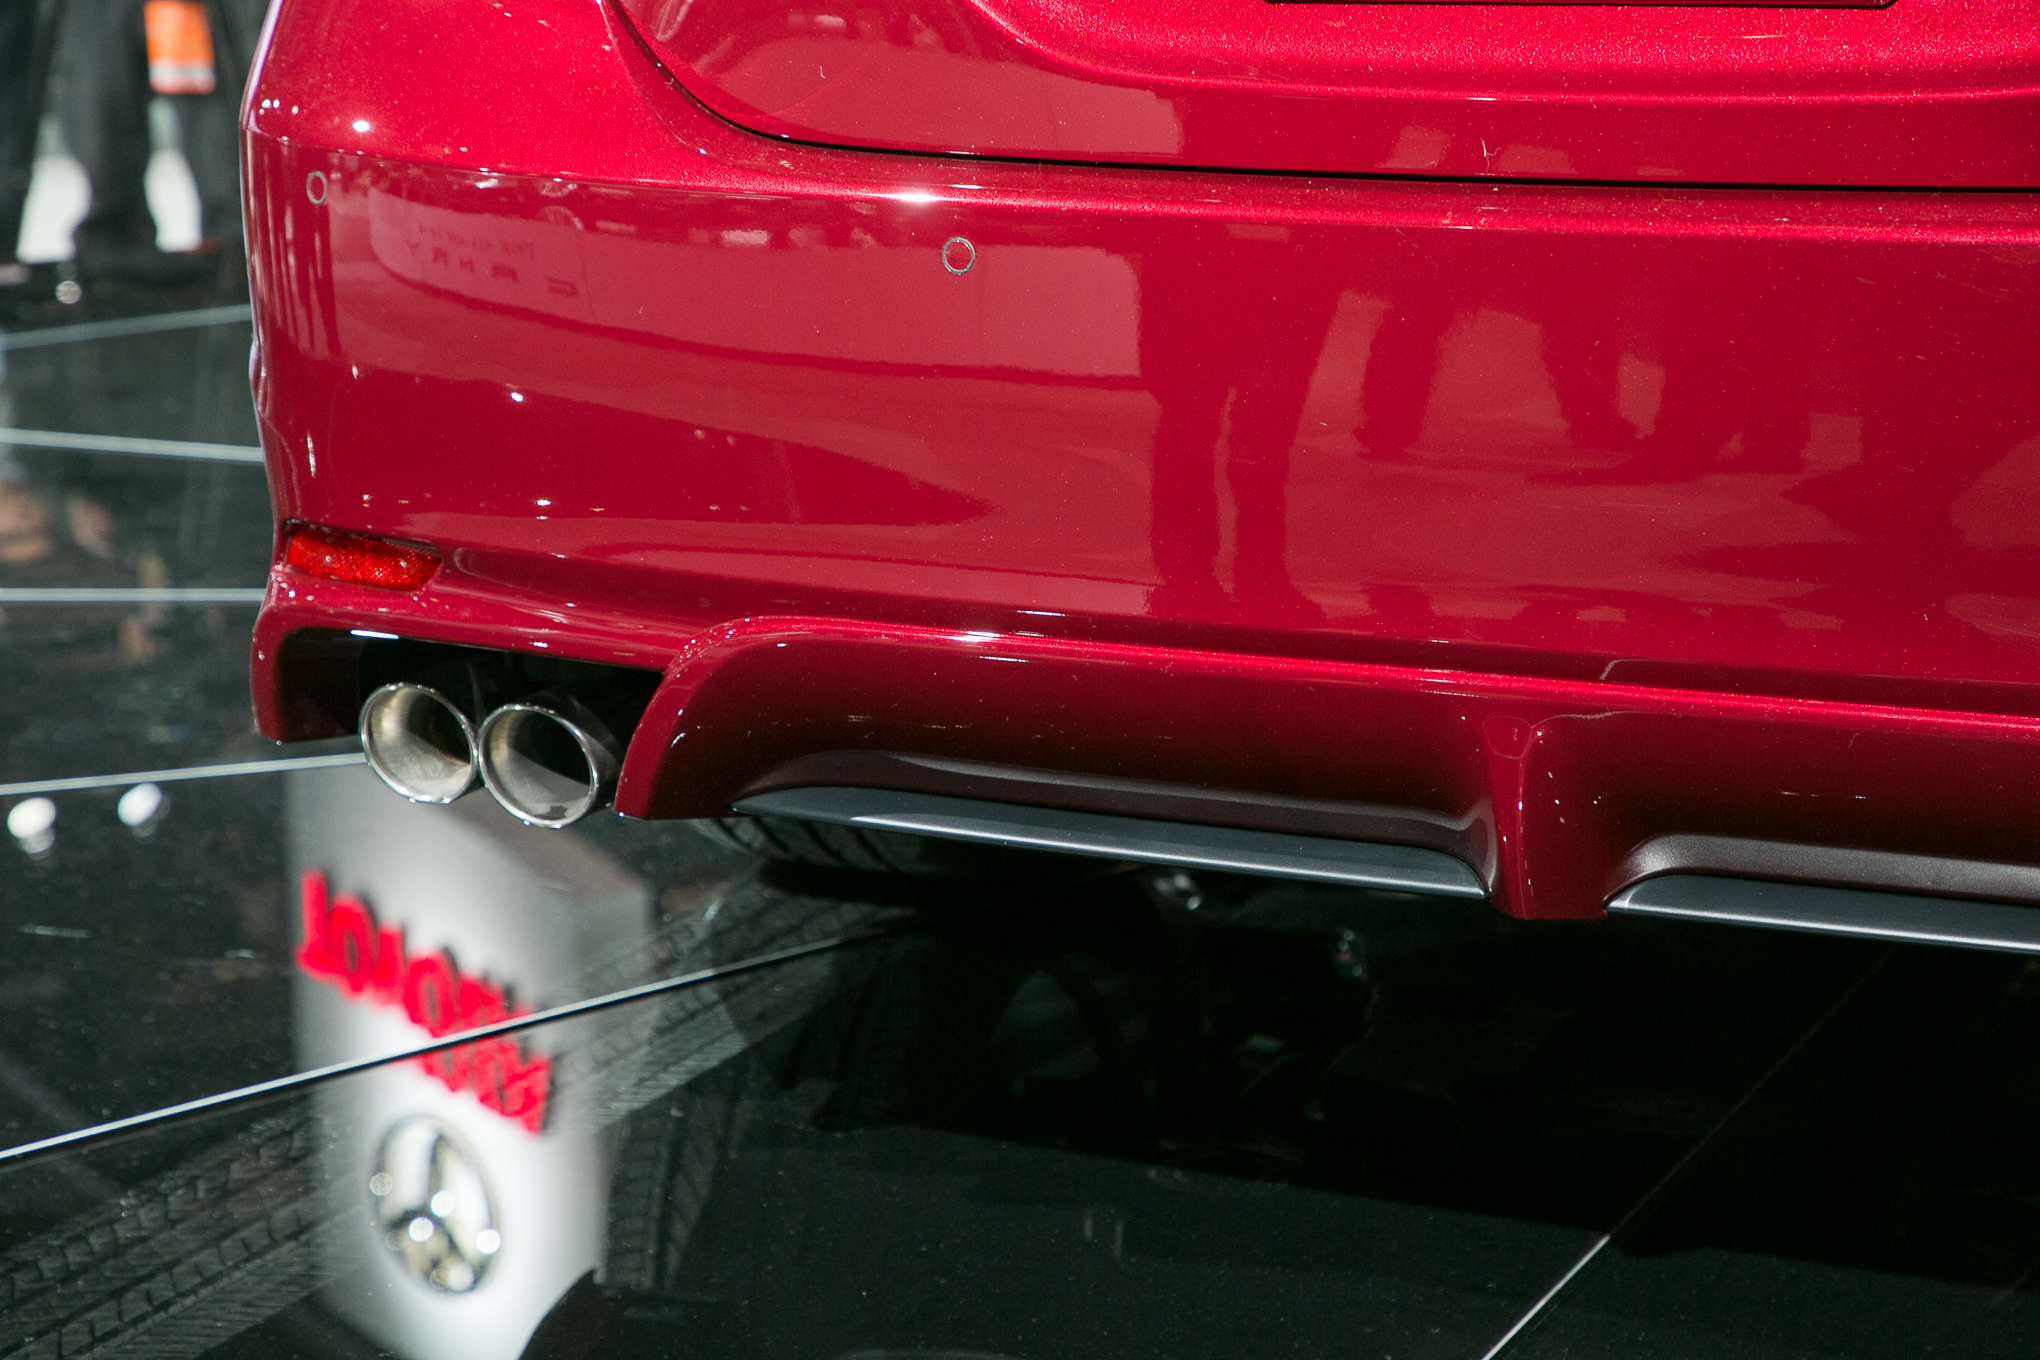 2018-Toyota-Camry-XSE-tailpipe